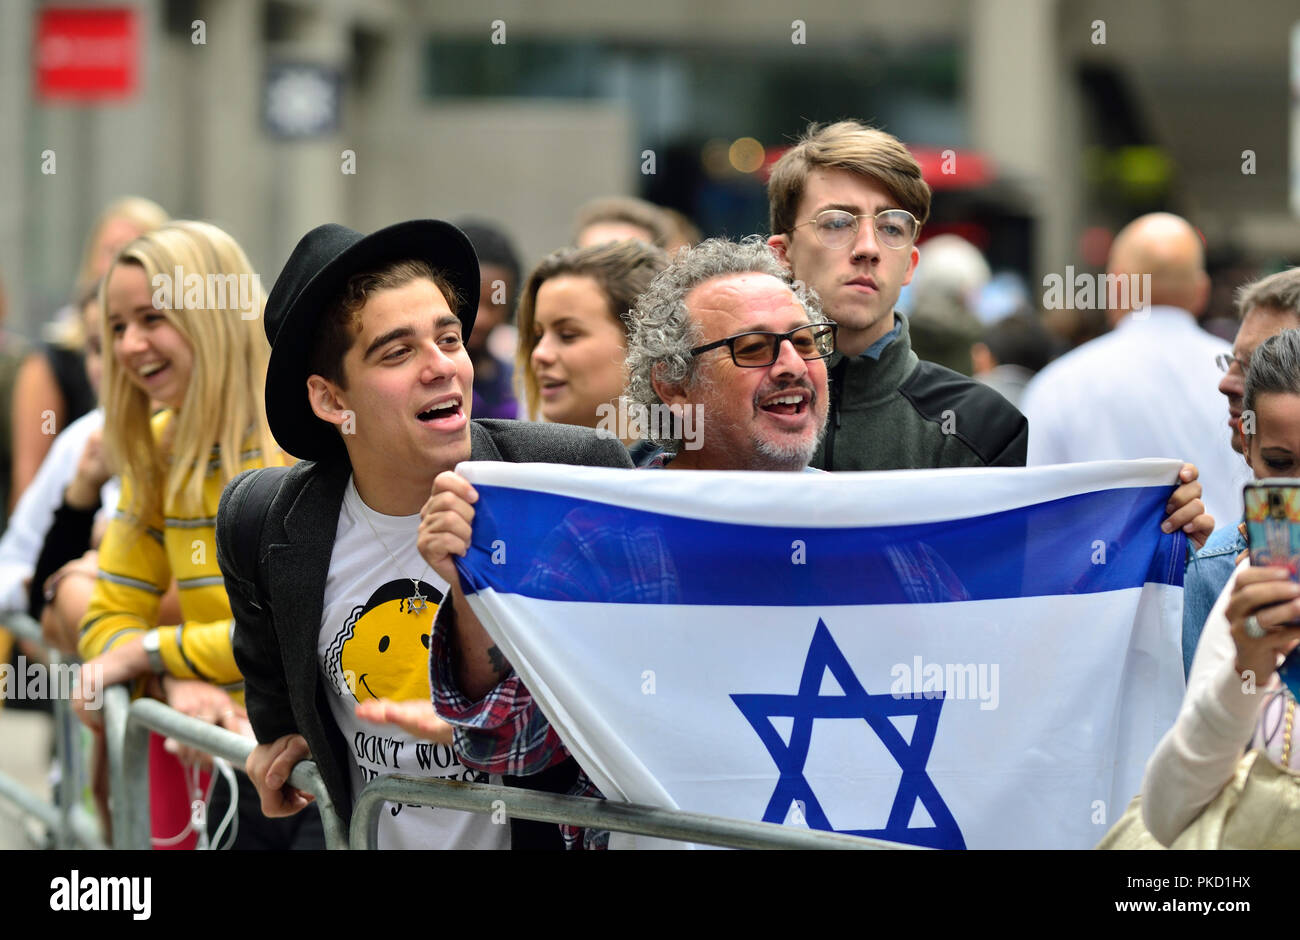 Harry Saul Markham and Gary Benjamin (Zionism supporters) protesting outside Labour Party HQ as the party discuss anti-Semitism inside. Sept 4th 2018 - Stock Image